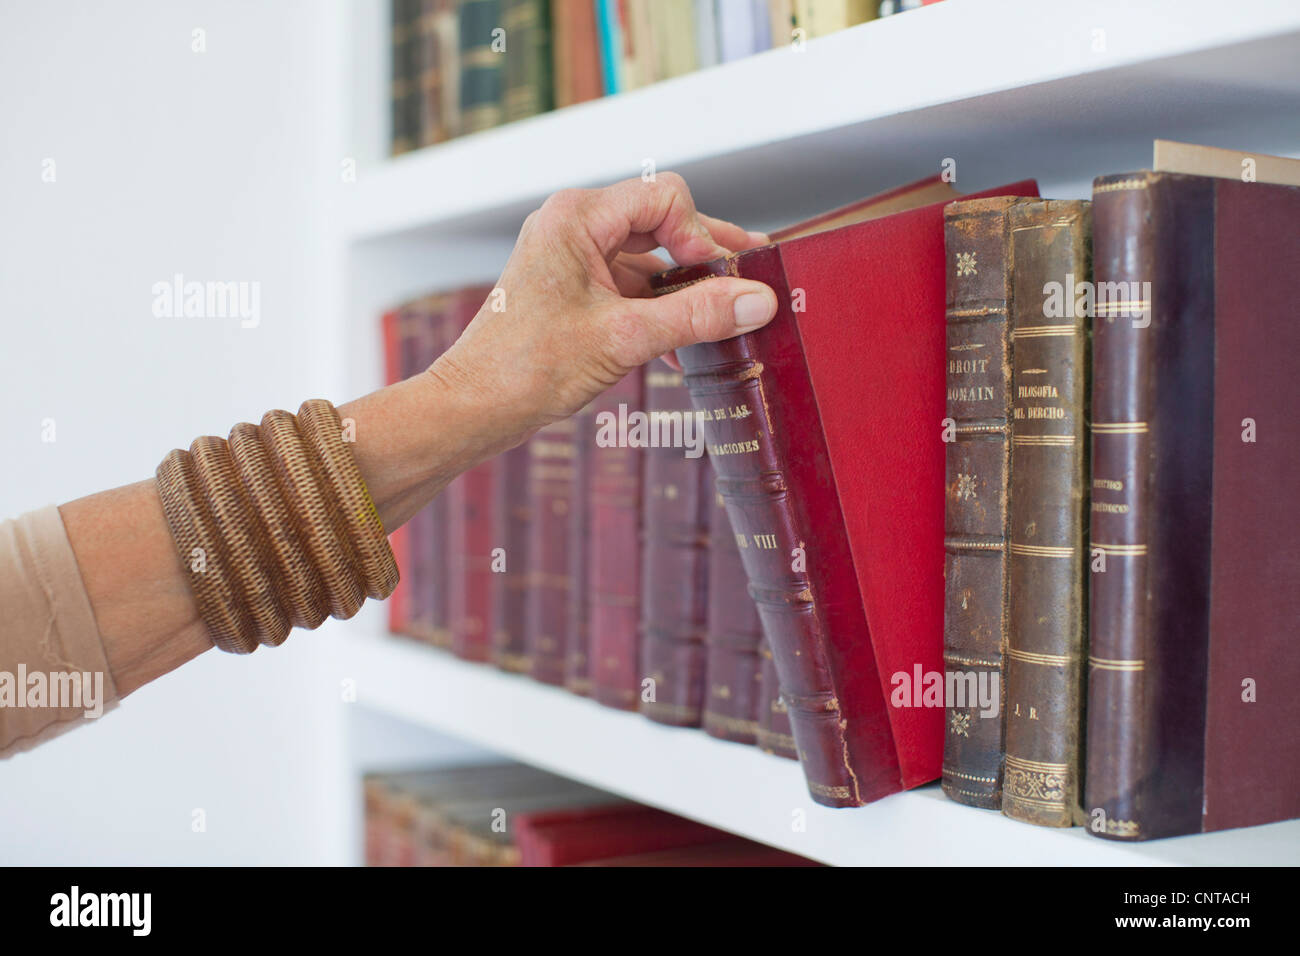 Woman choosing book from bookshelf, cropped - Stock Image